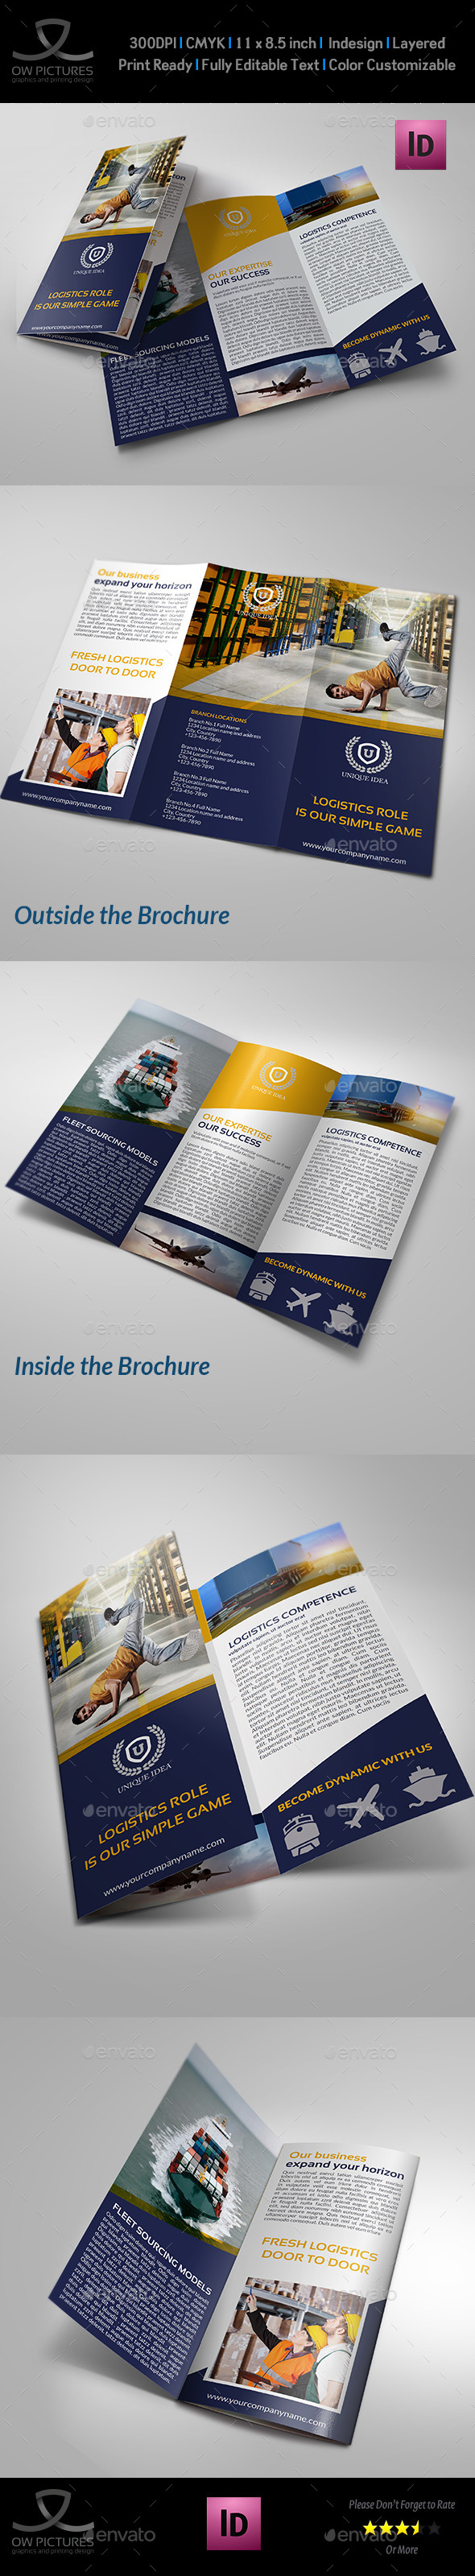 Logistic Services Tri-Fold Brochure Template Vol2